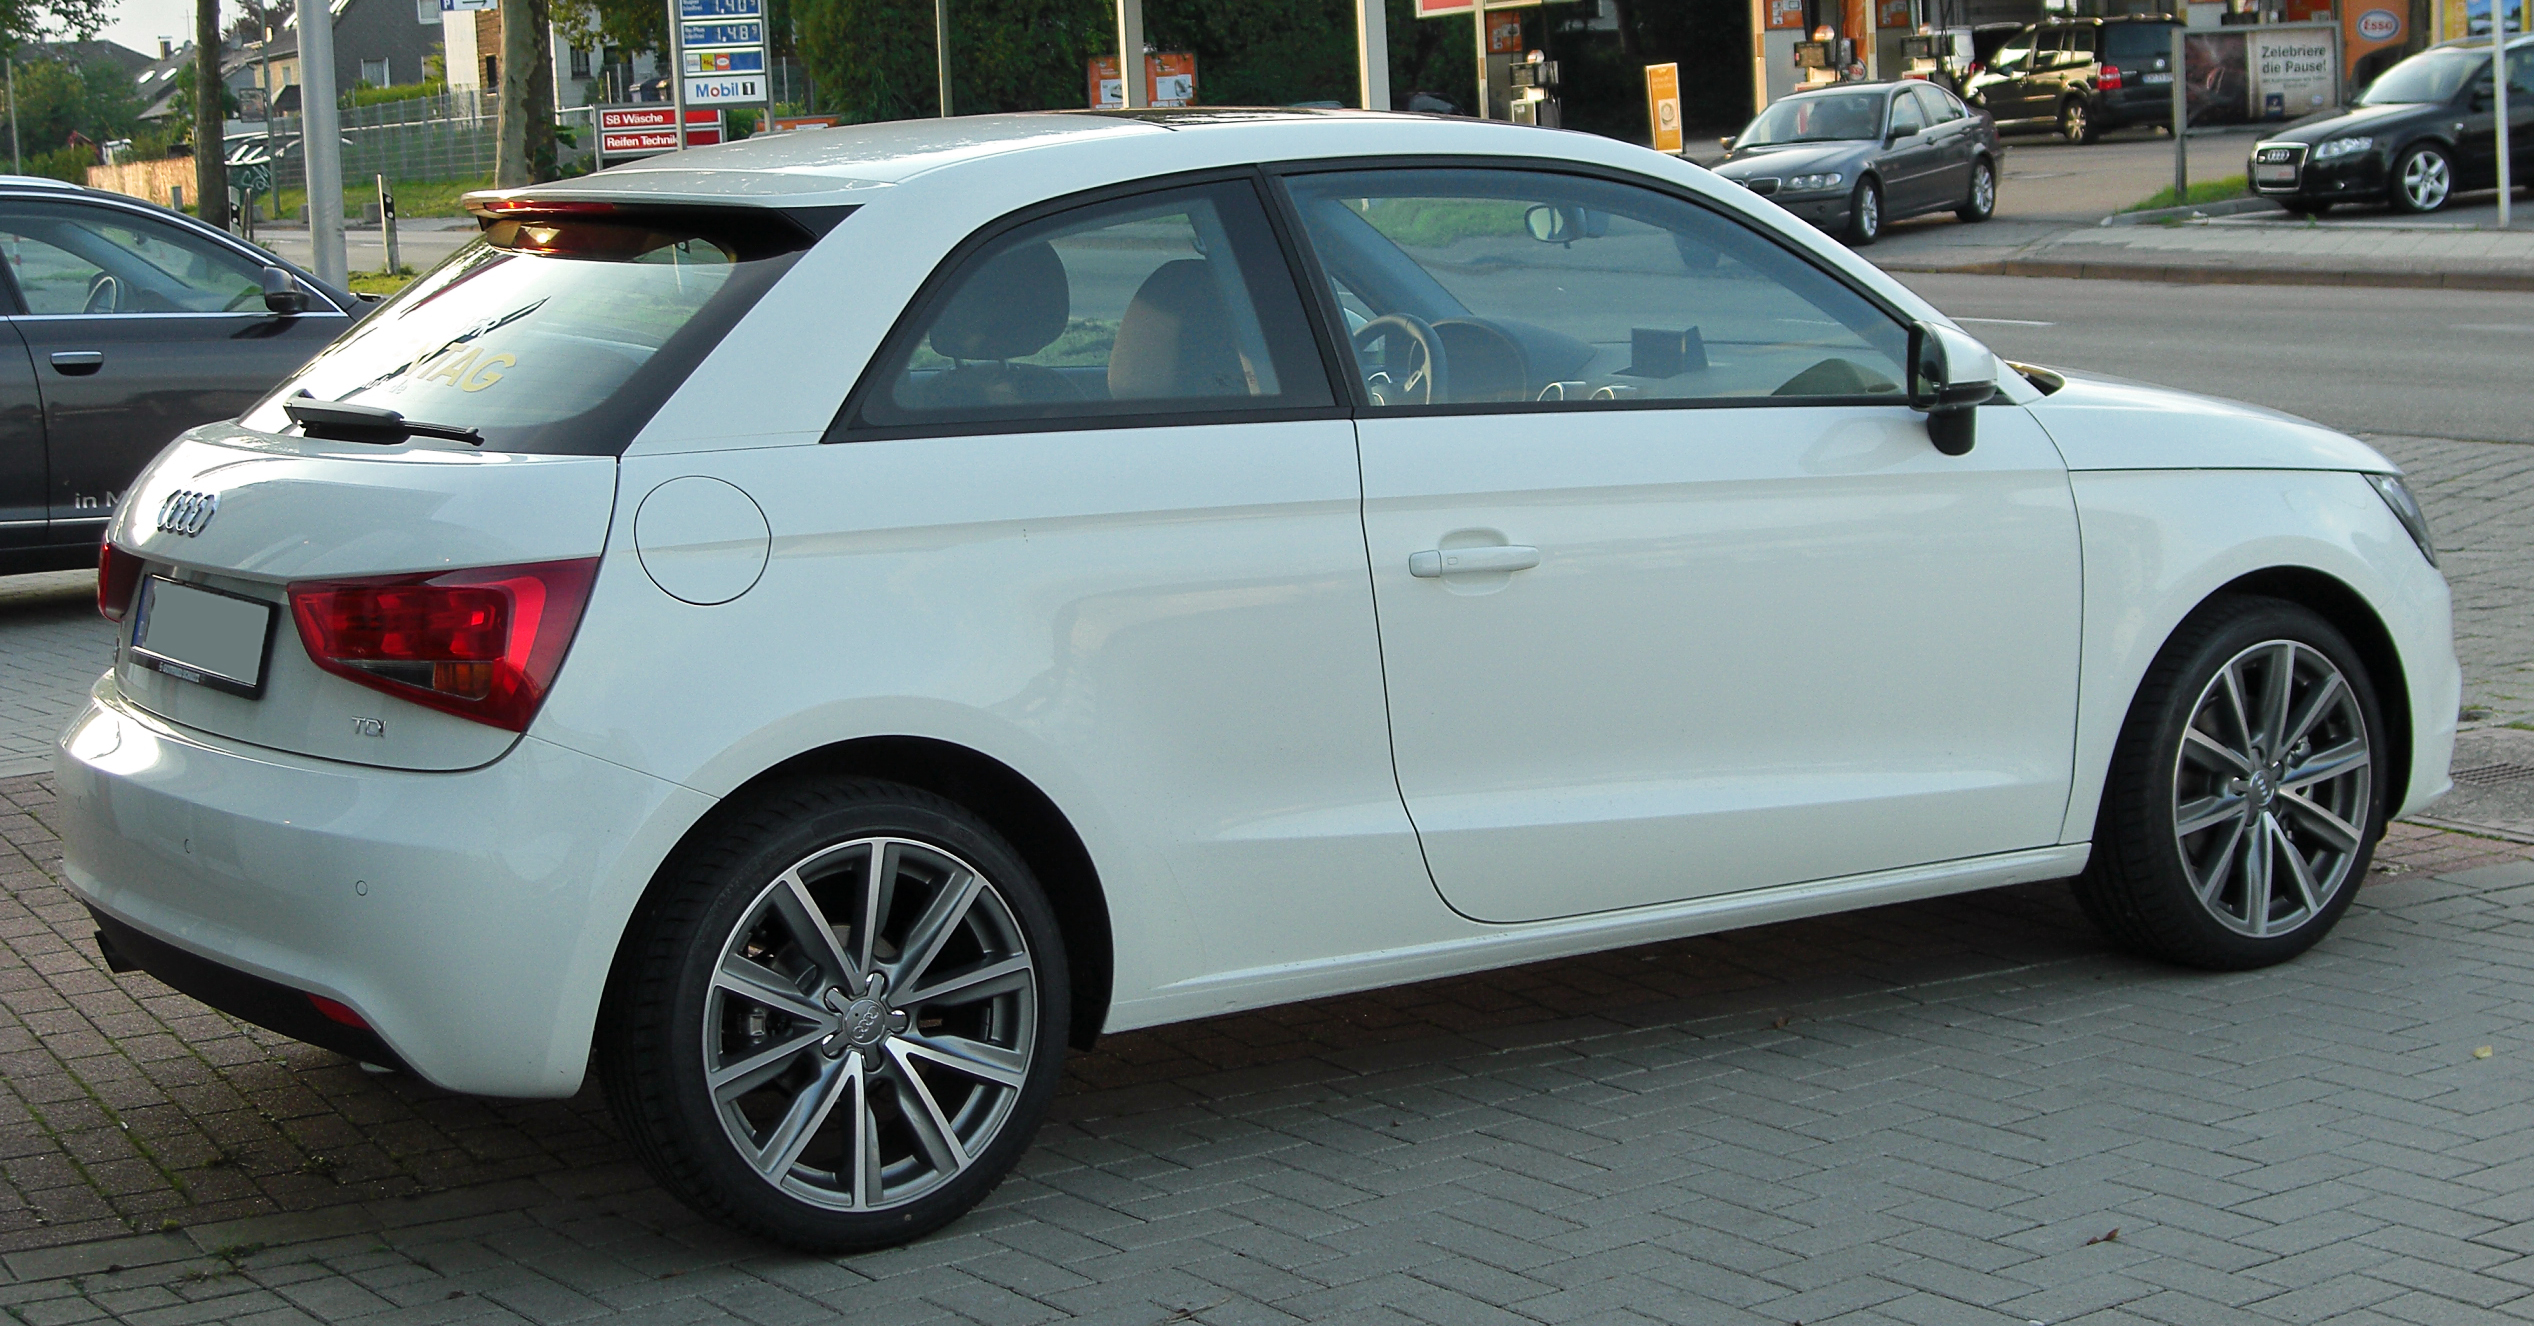 audi a1 1 6 tdi technical details history photos on better parts ltd